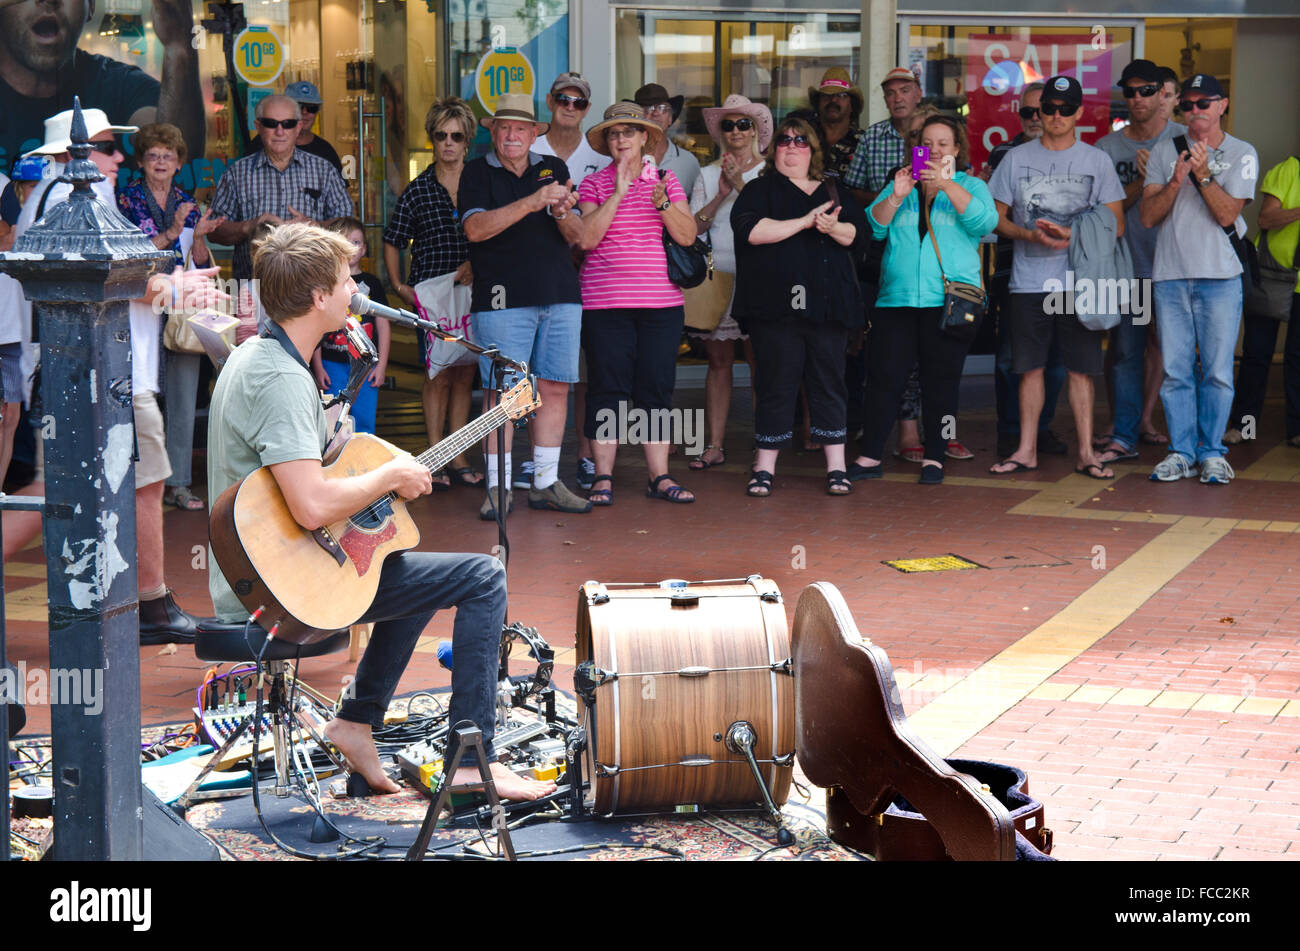 Mitch King Busking Championship winner at Tamworth Country Music Festival January 2016 Stock Photo